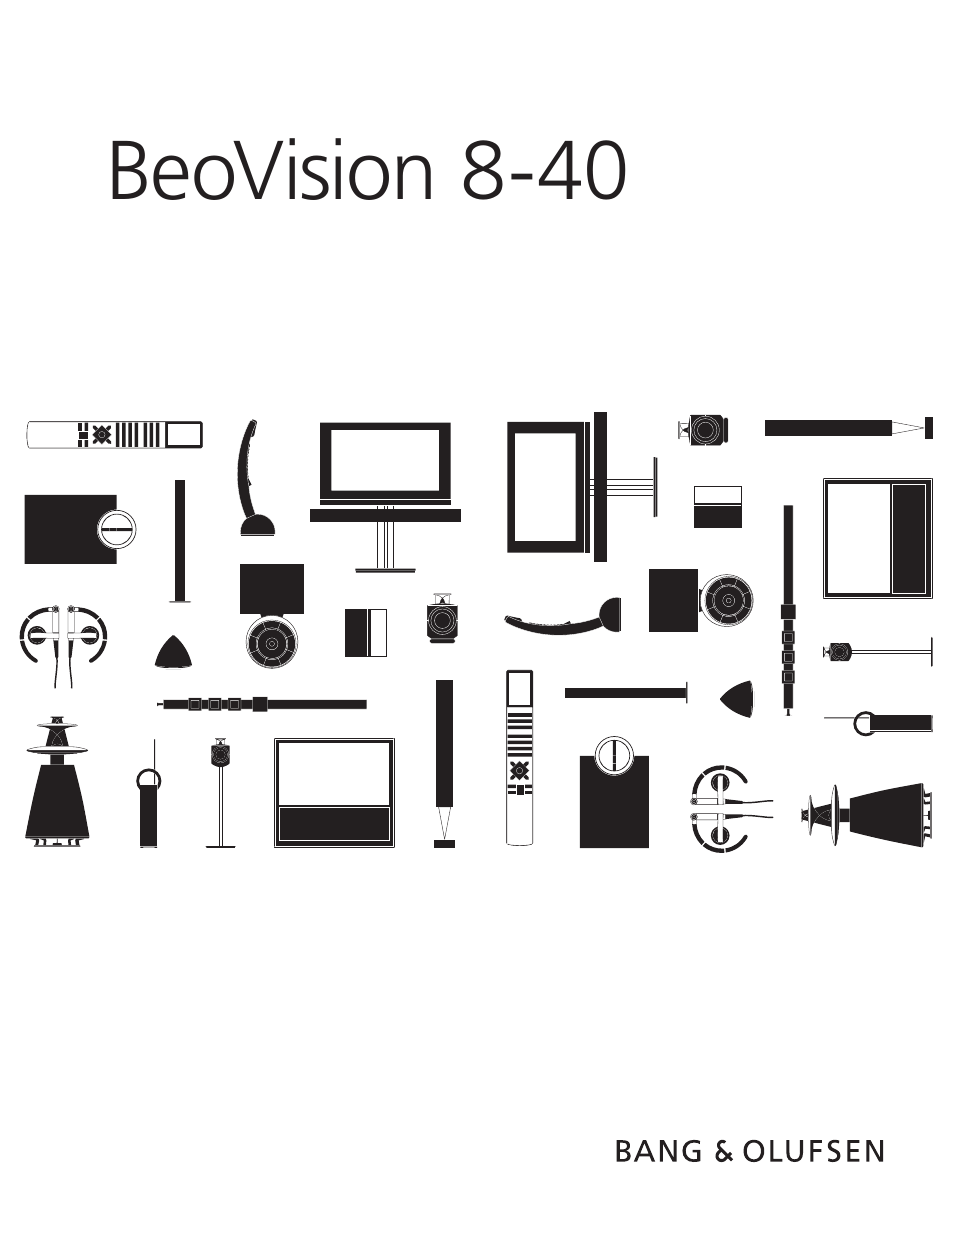 Bang & Olufsen BeoVision 8-40 Getting Started User Manual